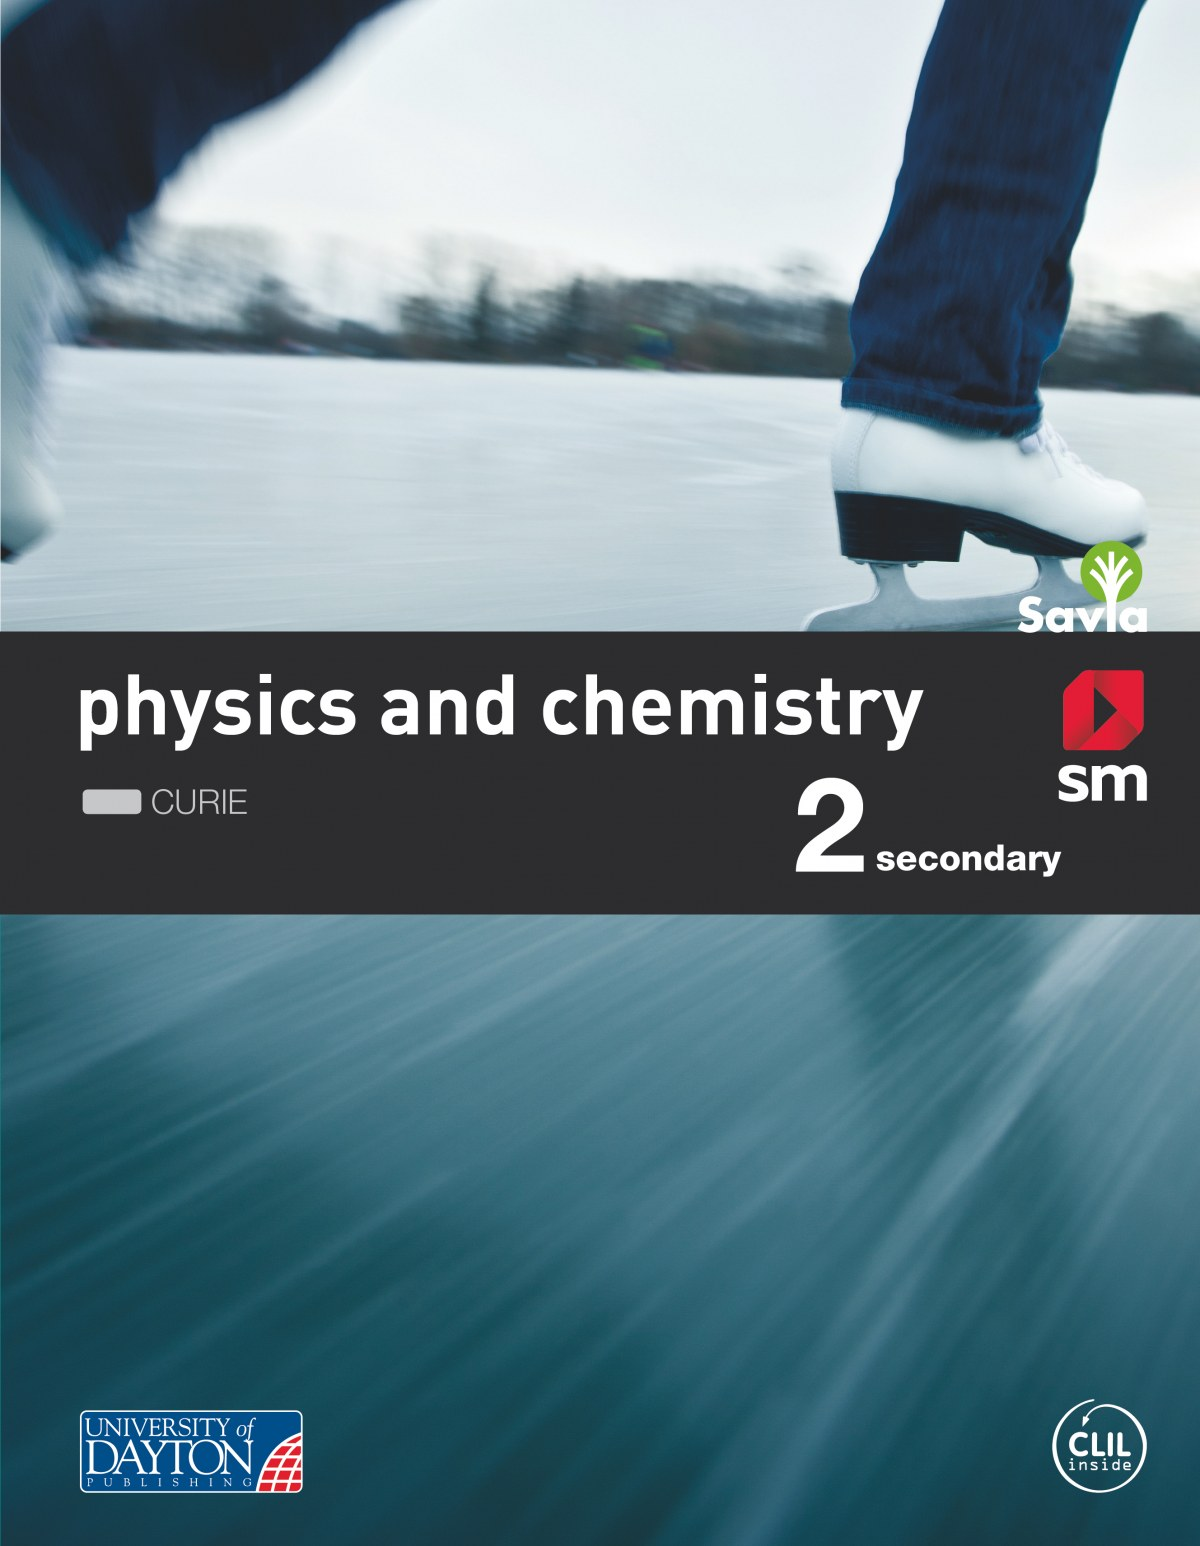 Physics and chemistry. 2 Secundary. Curie